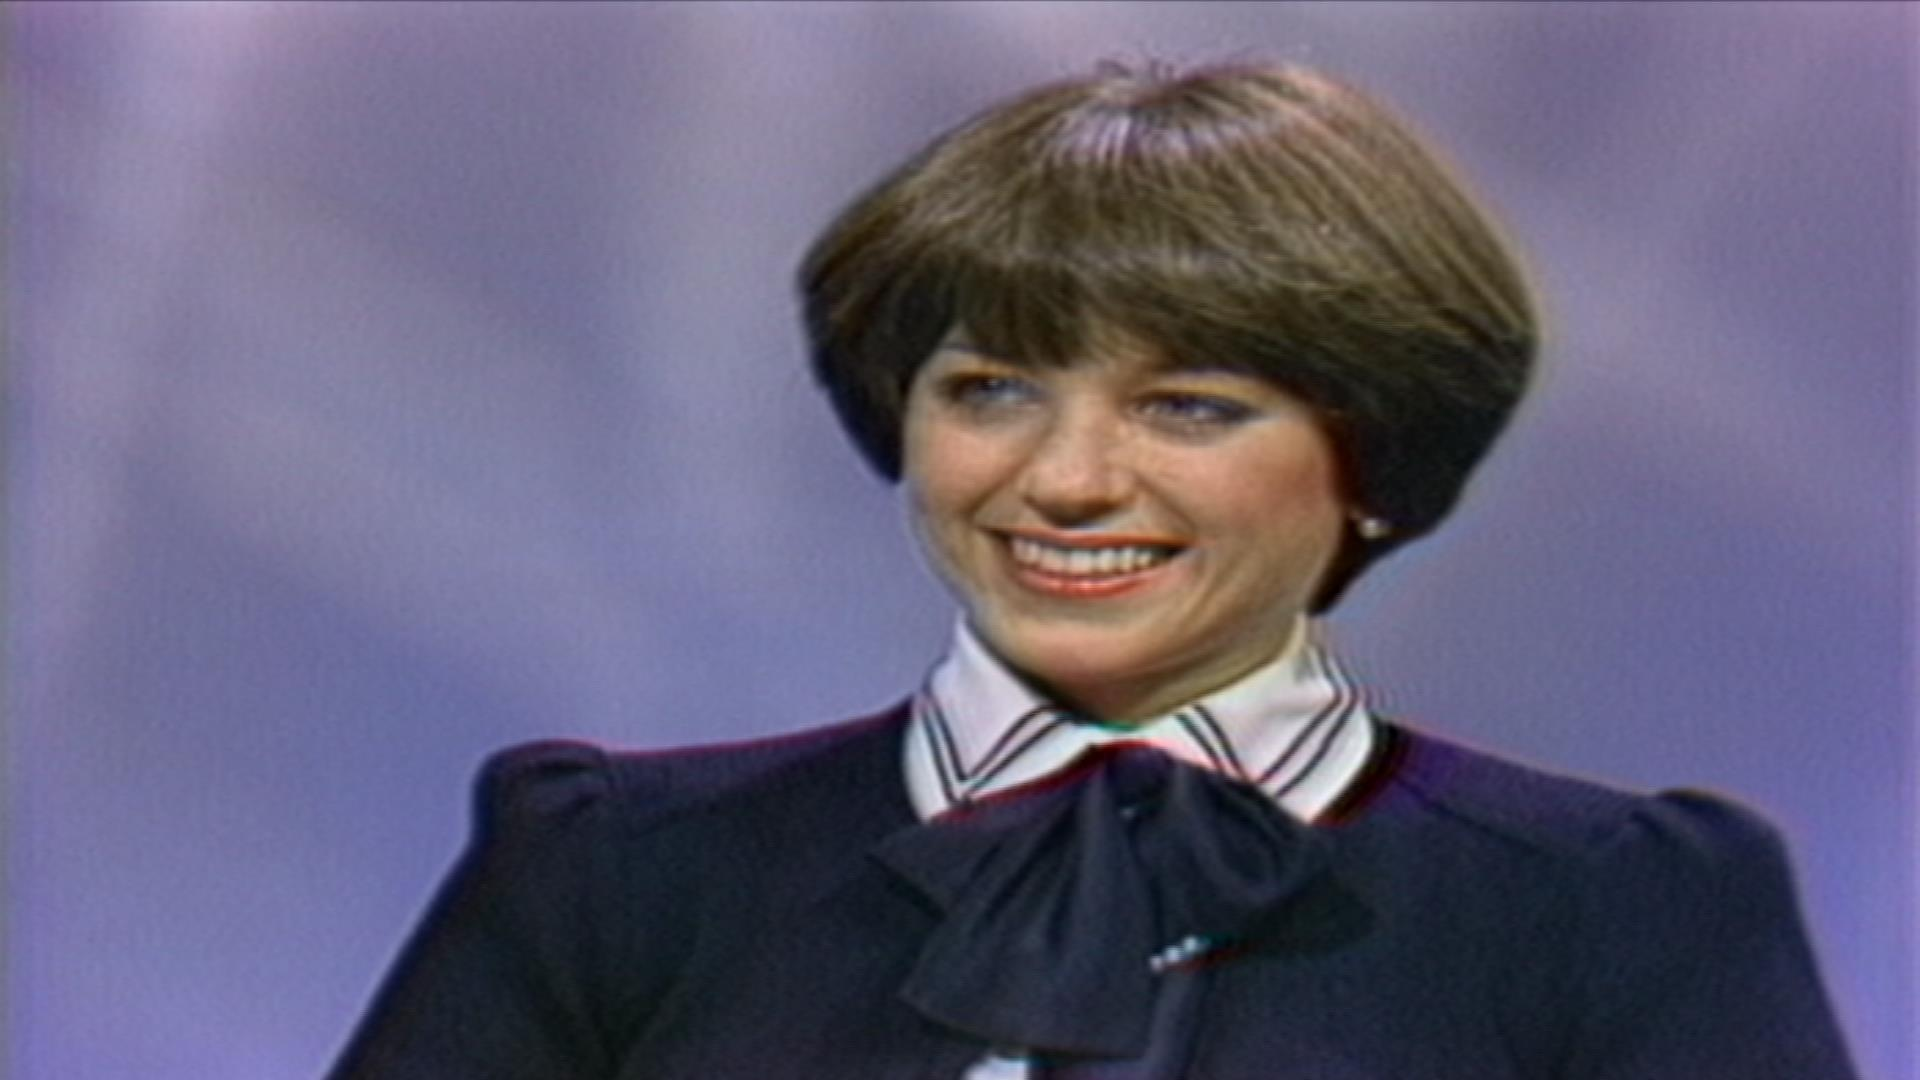 Olympic Flashback Skater Dorothy Hamill Visits Today In 83